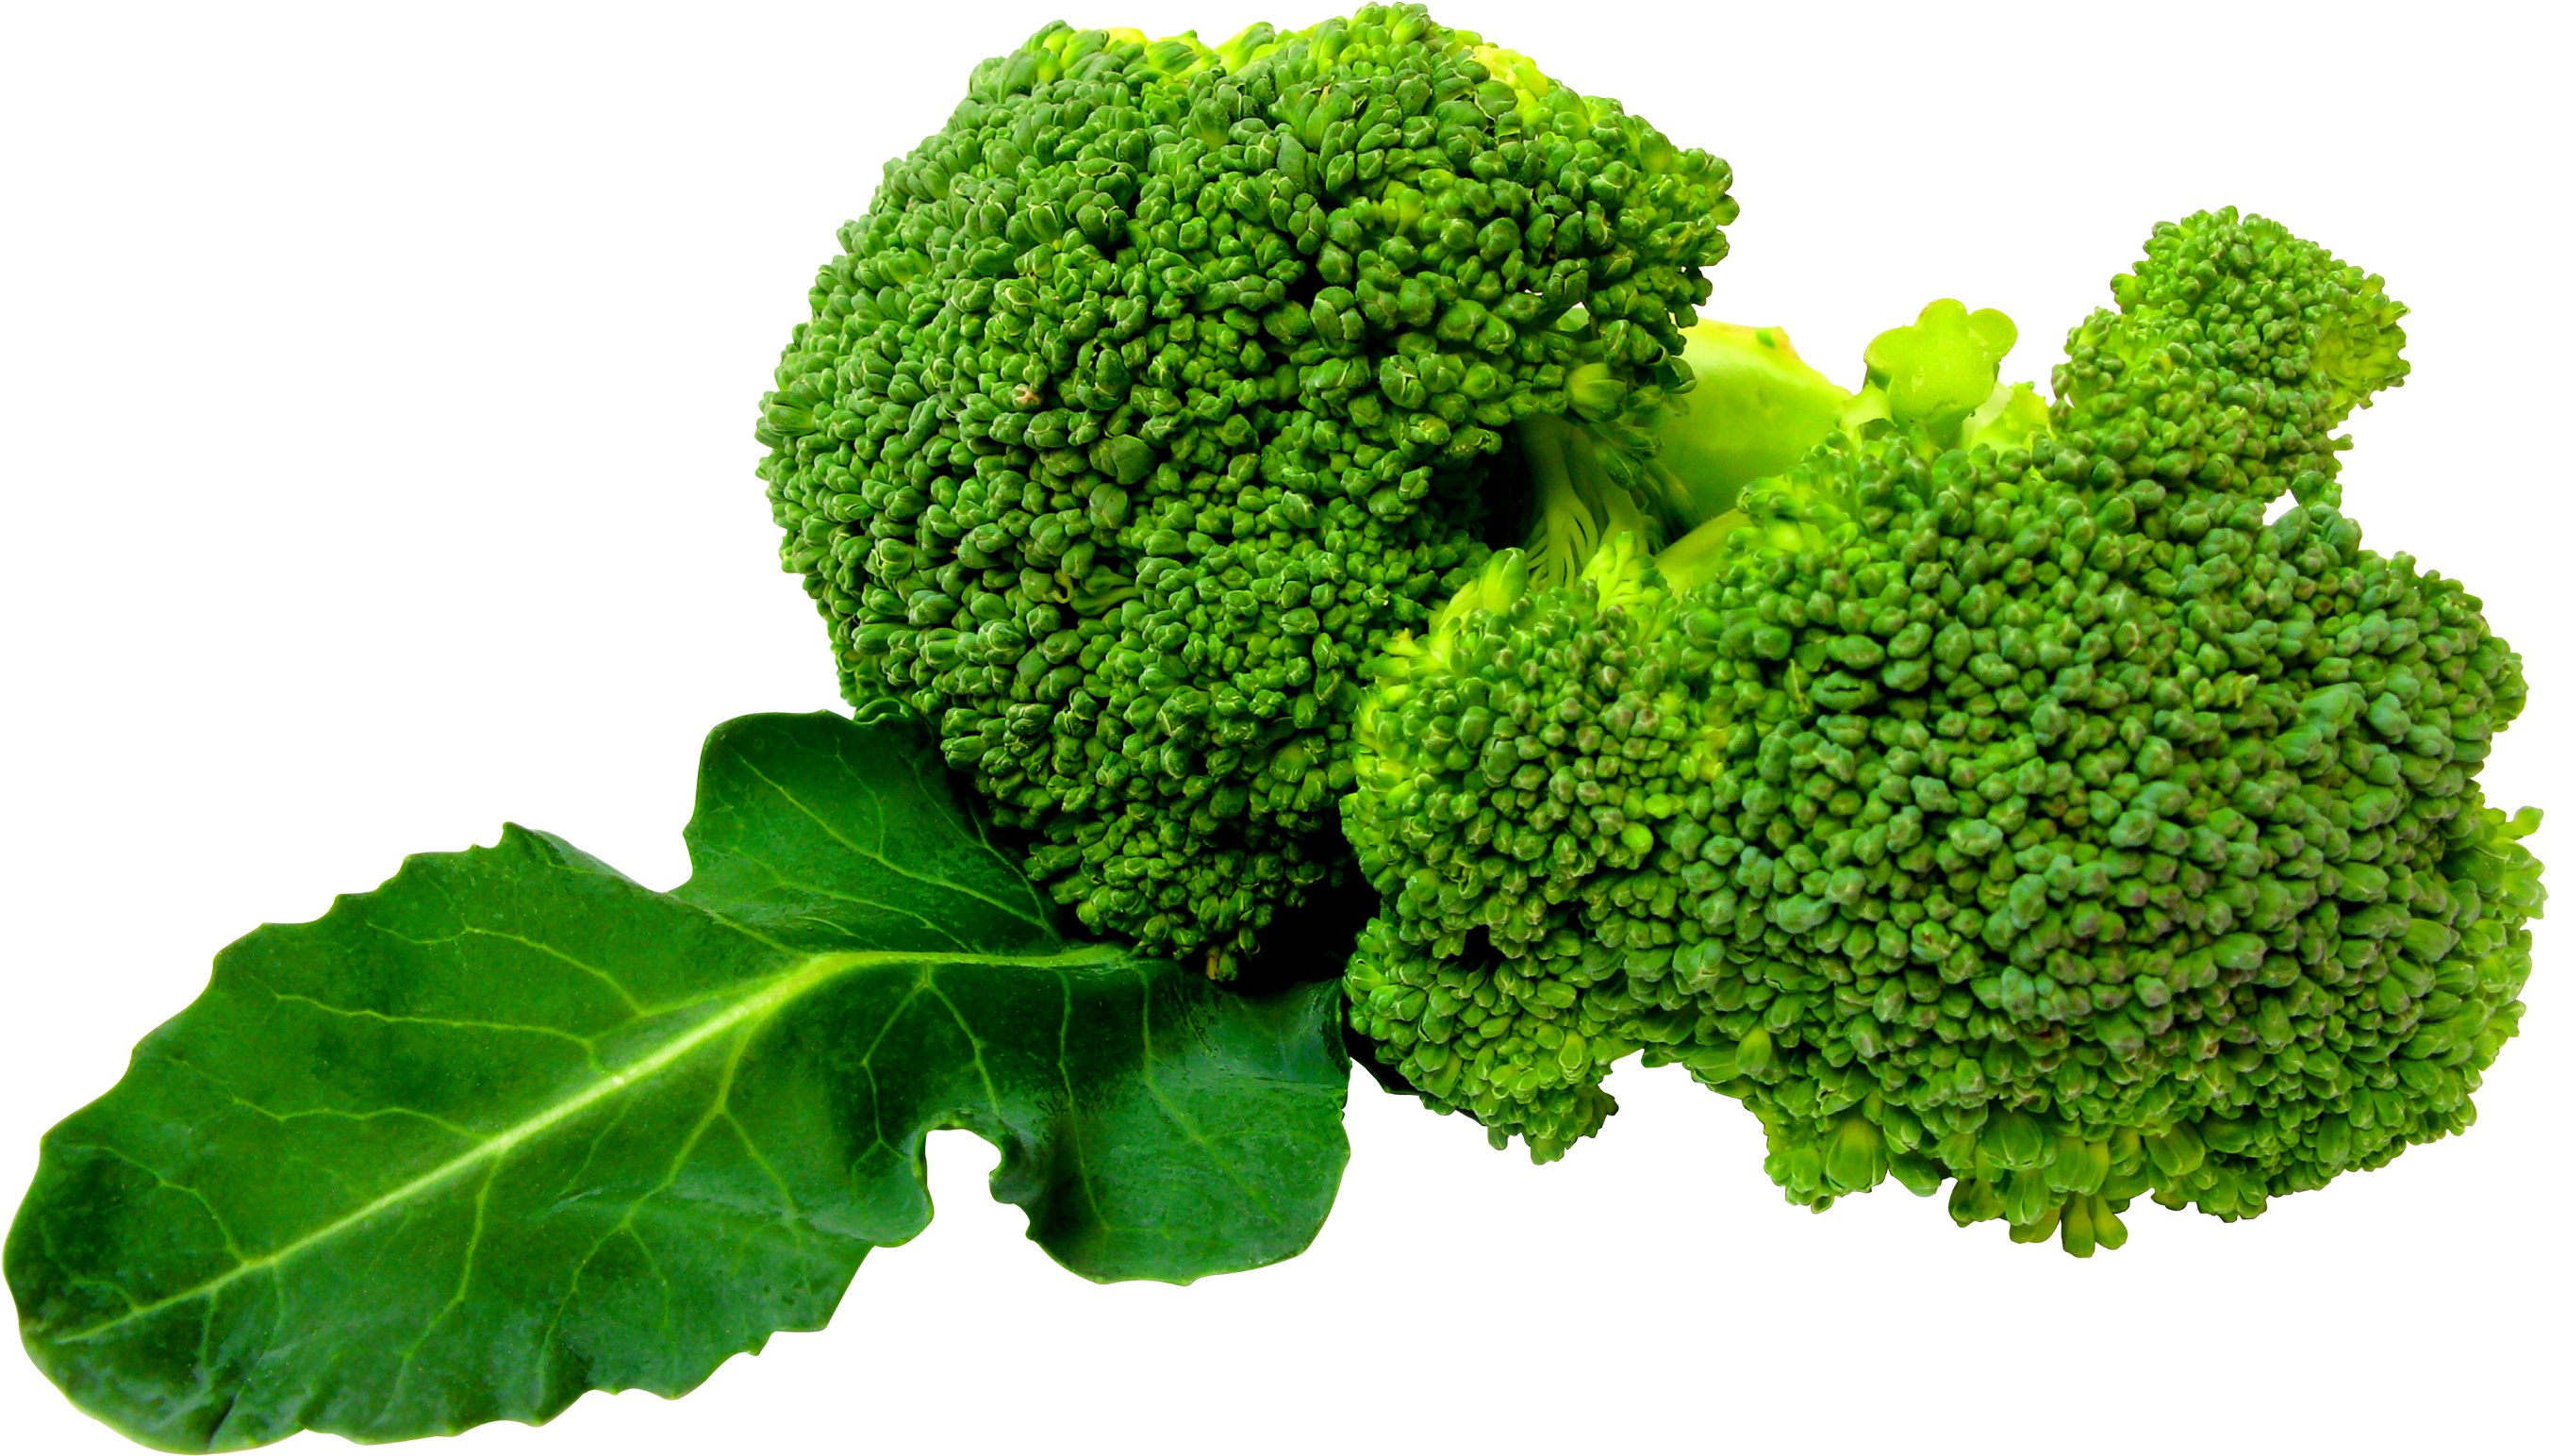 Green Broccoli PNG image - Broccoli HD PNG